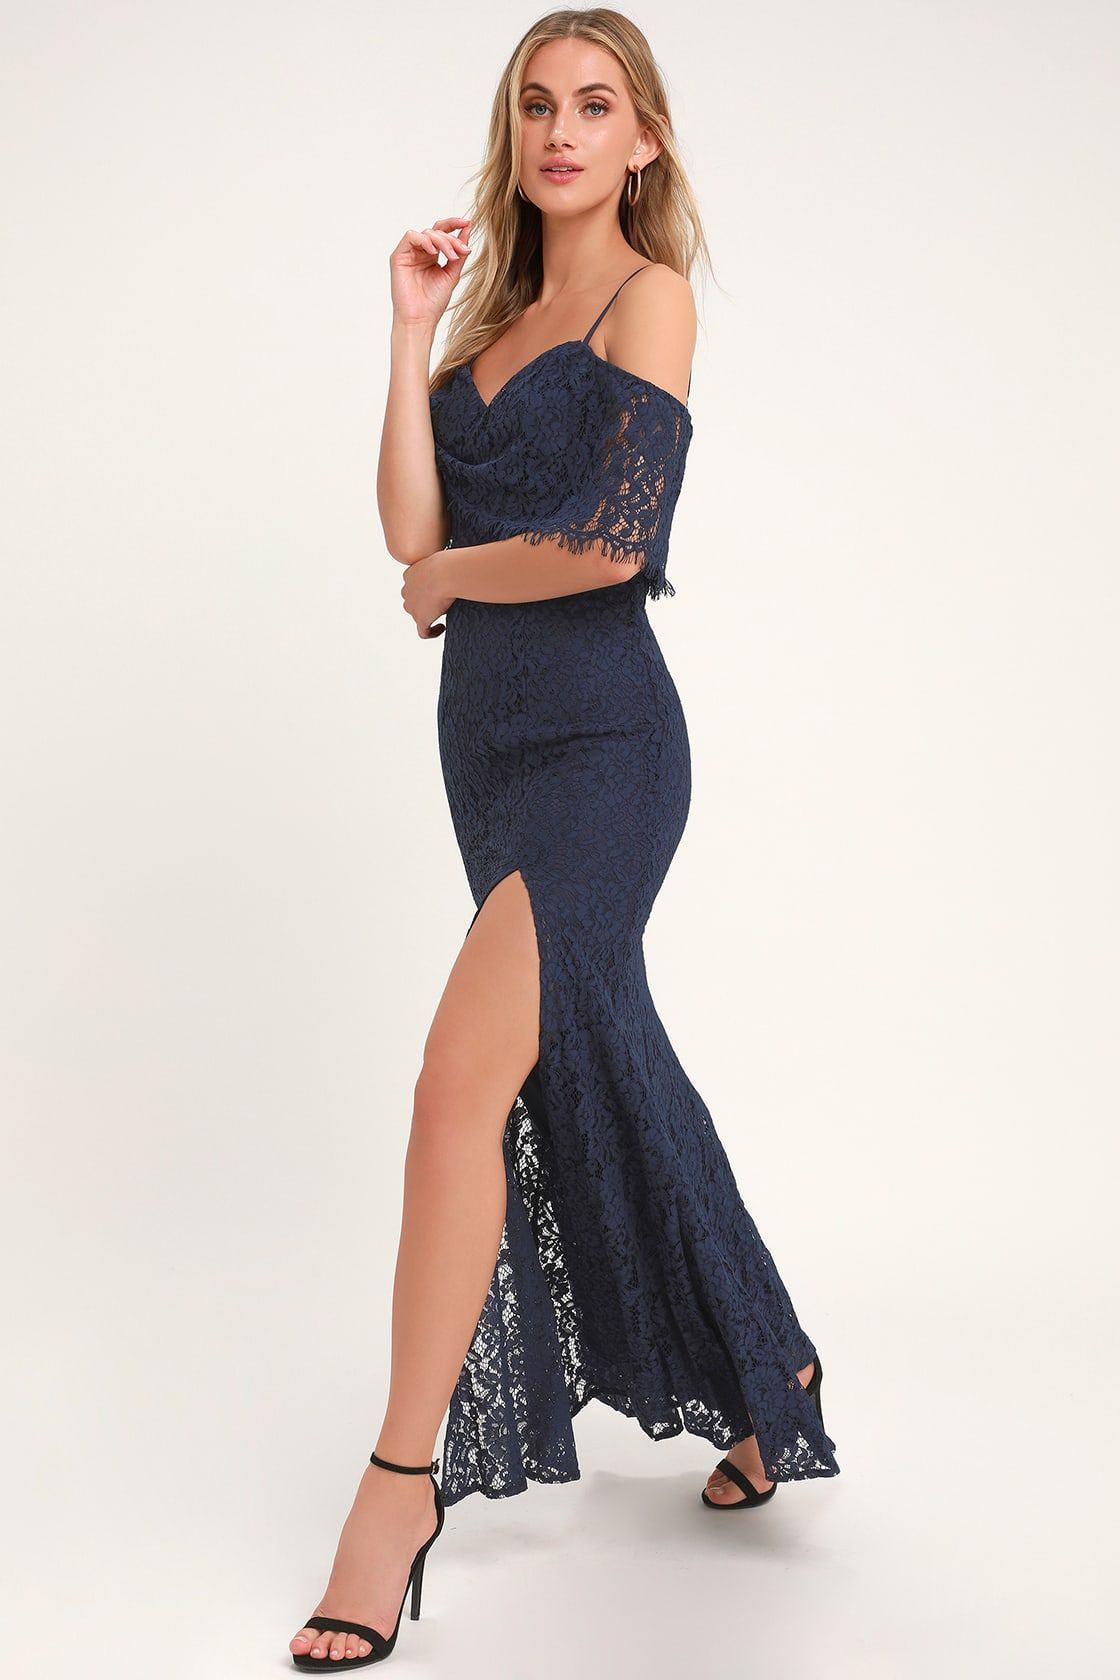 6720bc0a7308 Lulus | Caterina Navy Blue Lace Off-the-Shoulder Maxi Dress | Size ...